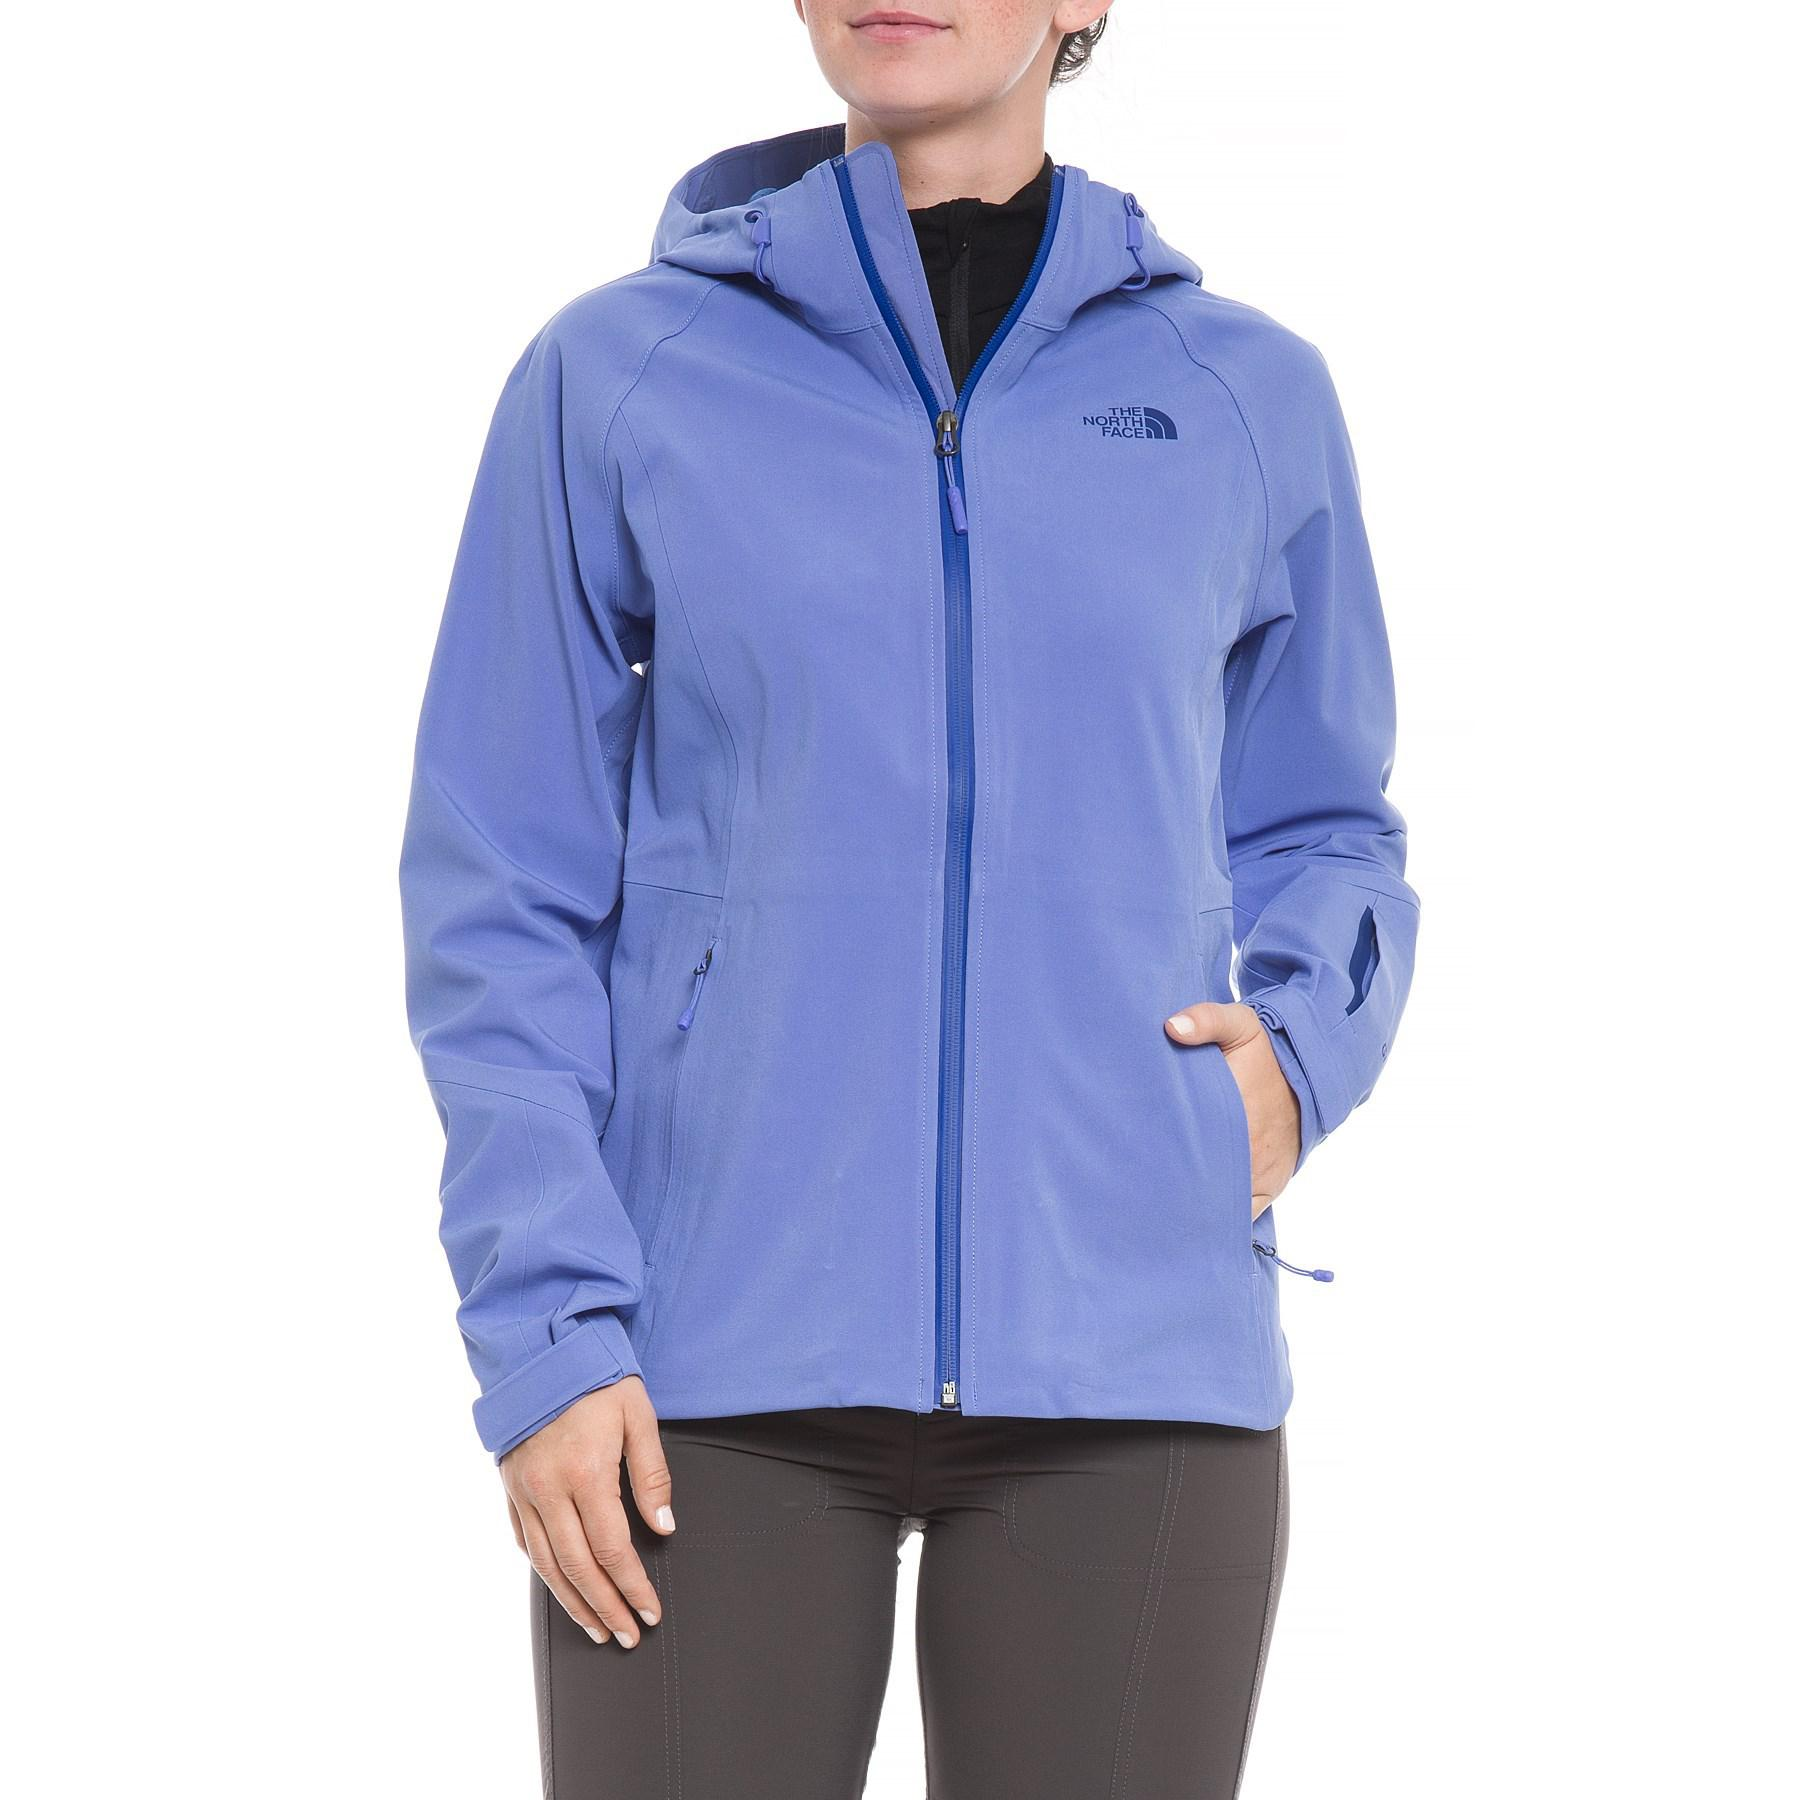 878f4fab8c The North Face Apex Flex Gore-tex® Jacket in Blue - Lyst